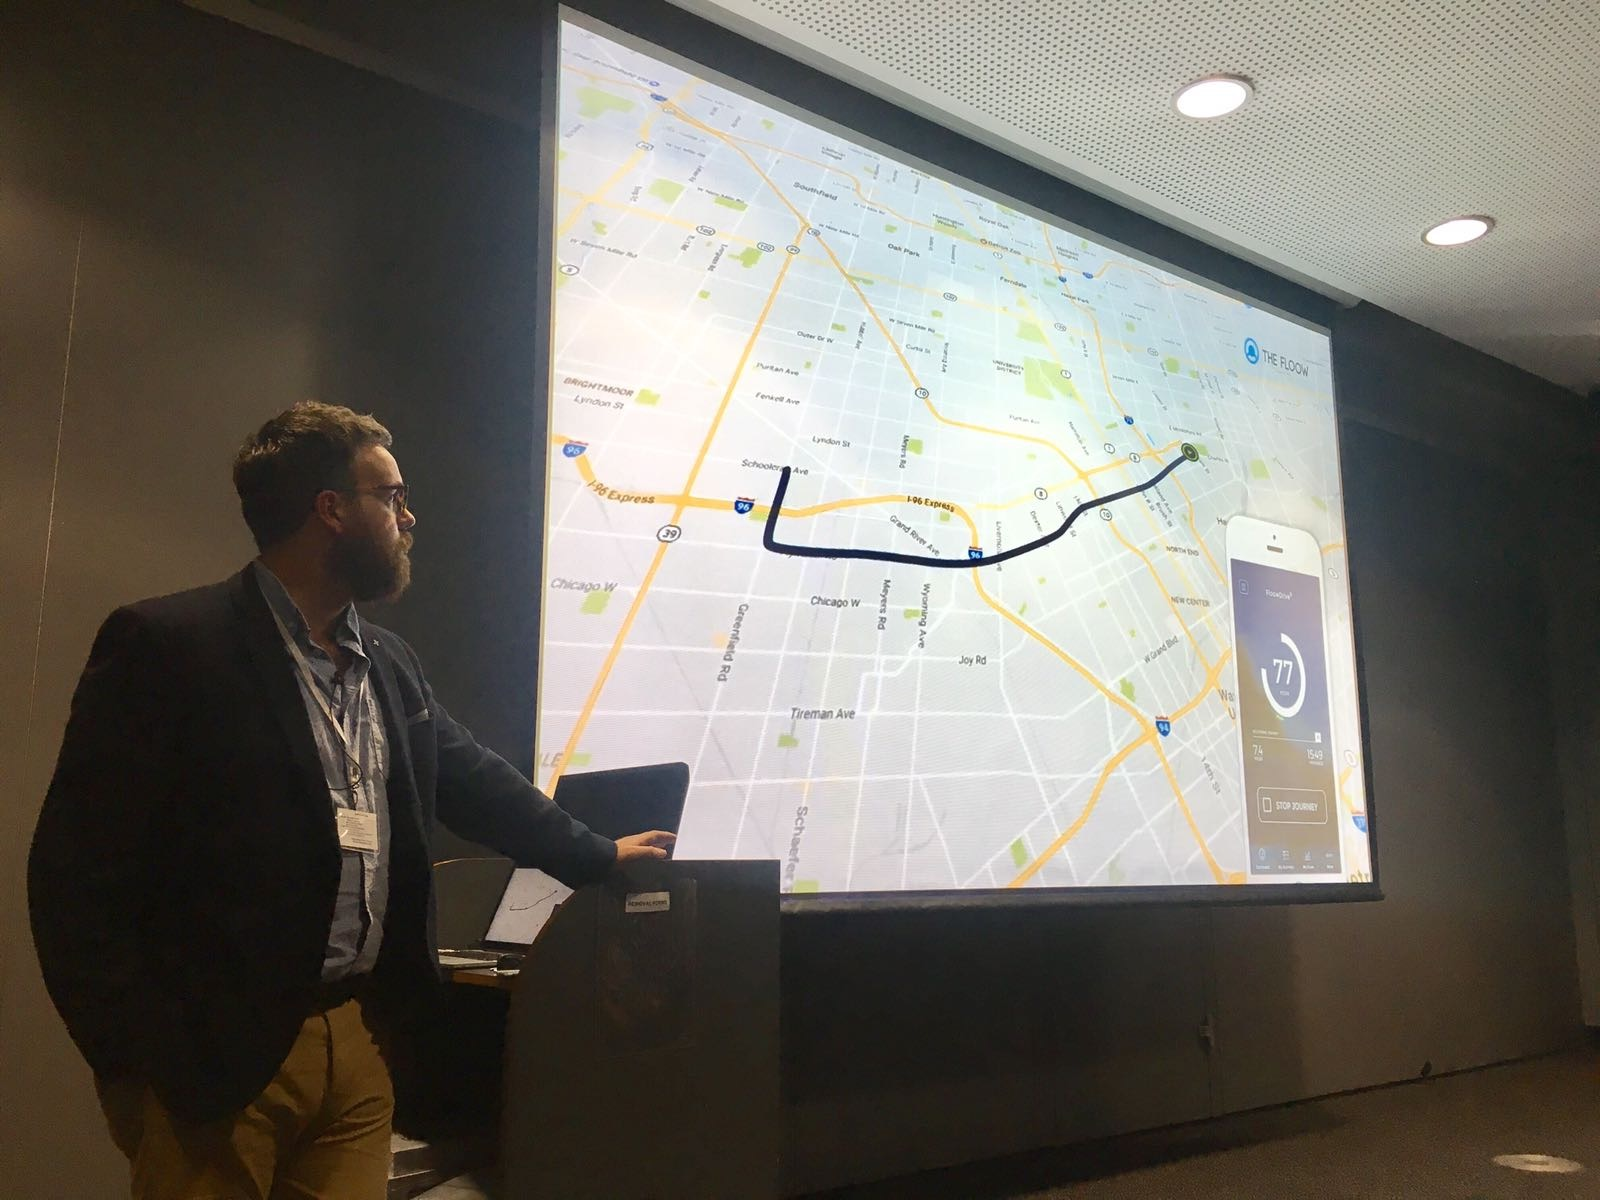 Man leaning against podium whilst presenting on screen which showcases a map